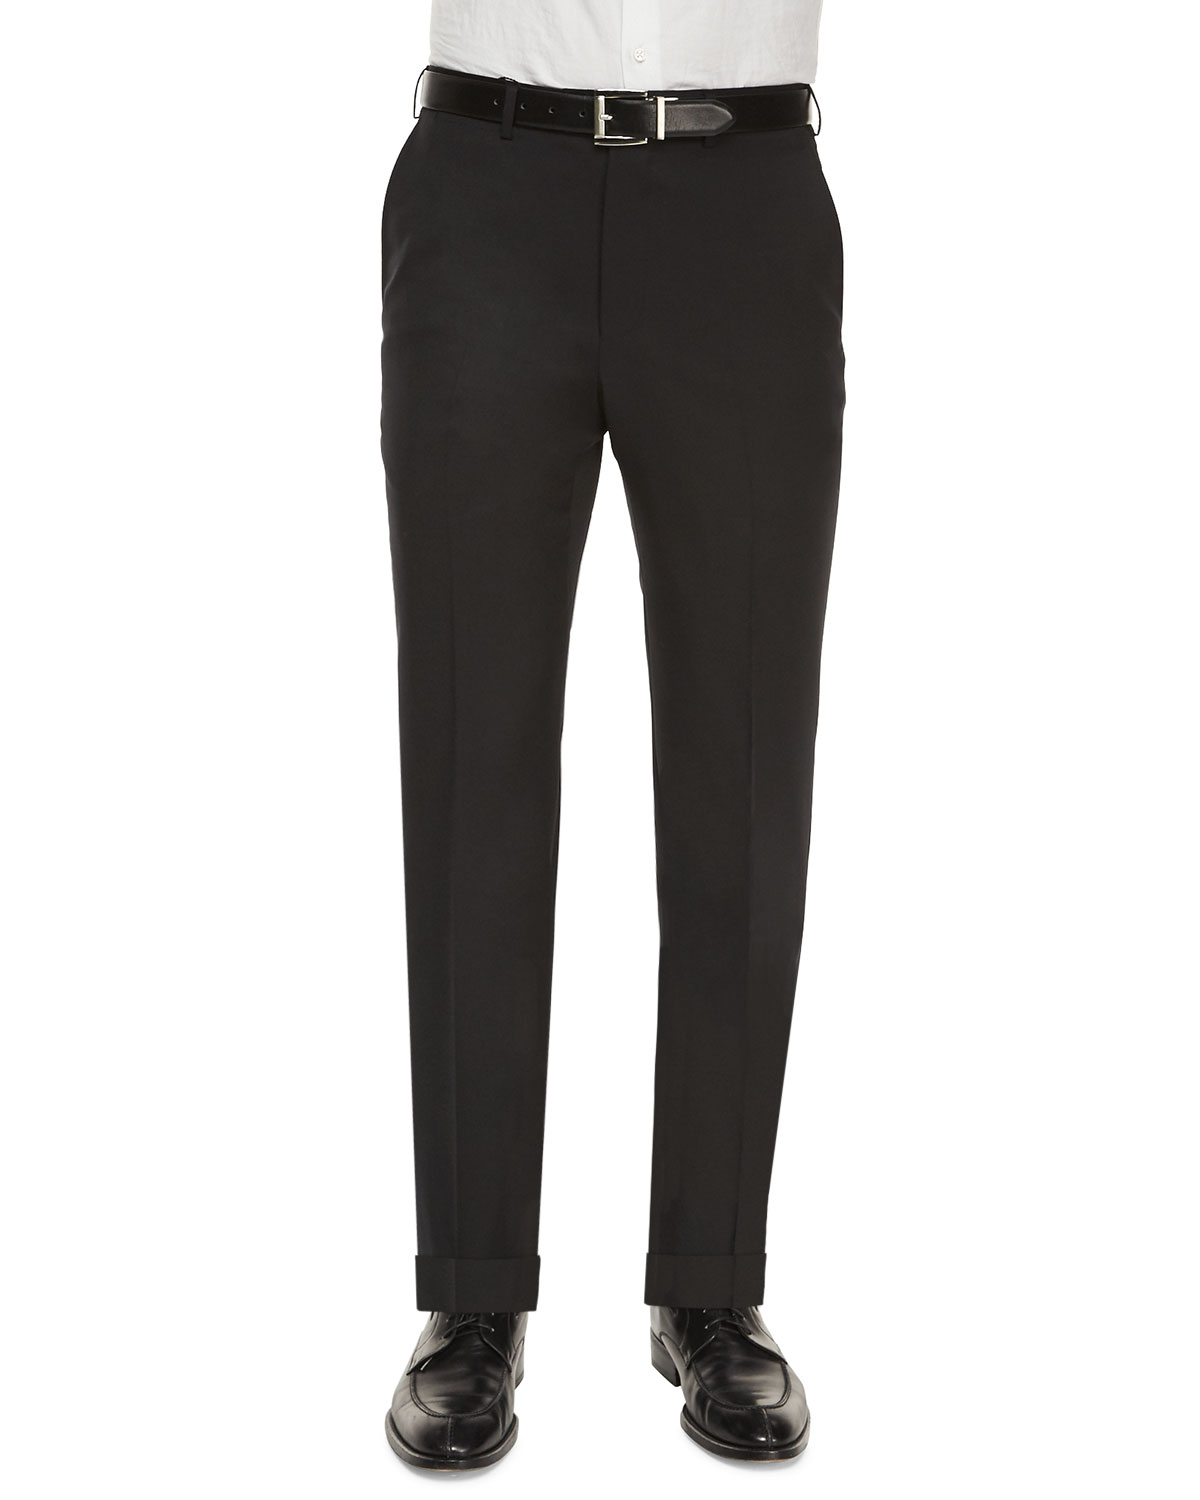 Ermenegildo Zegna Flat-Front Wool Regular-Fit Trousers, Black